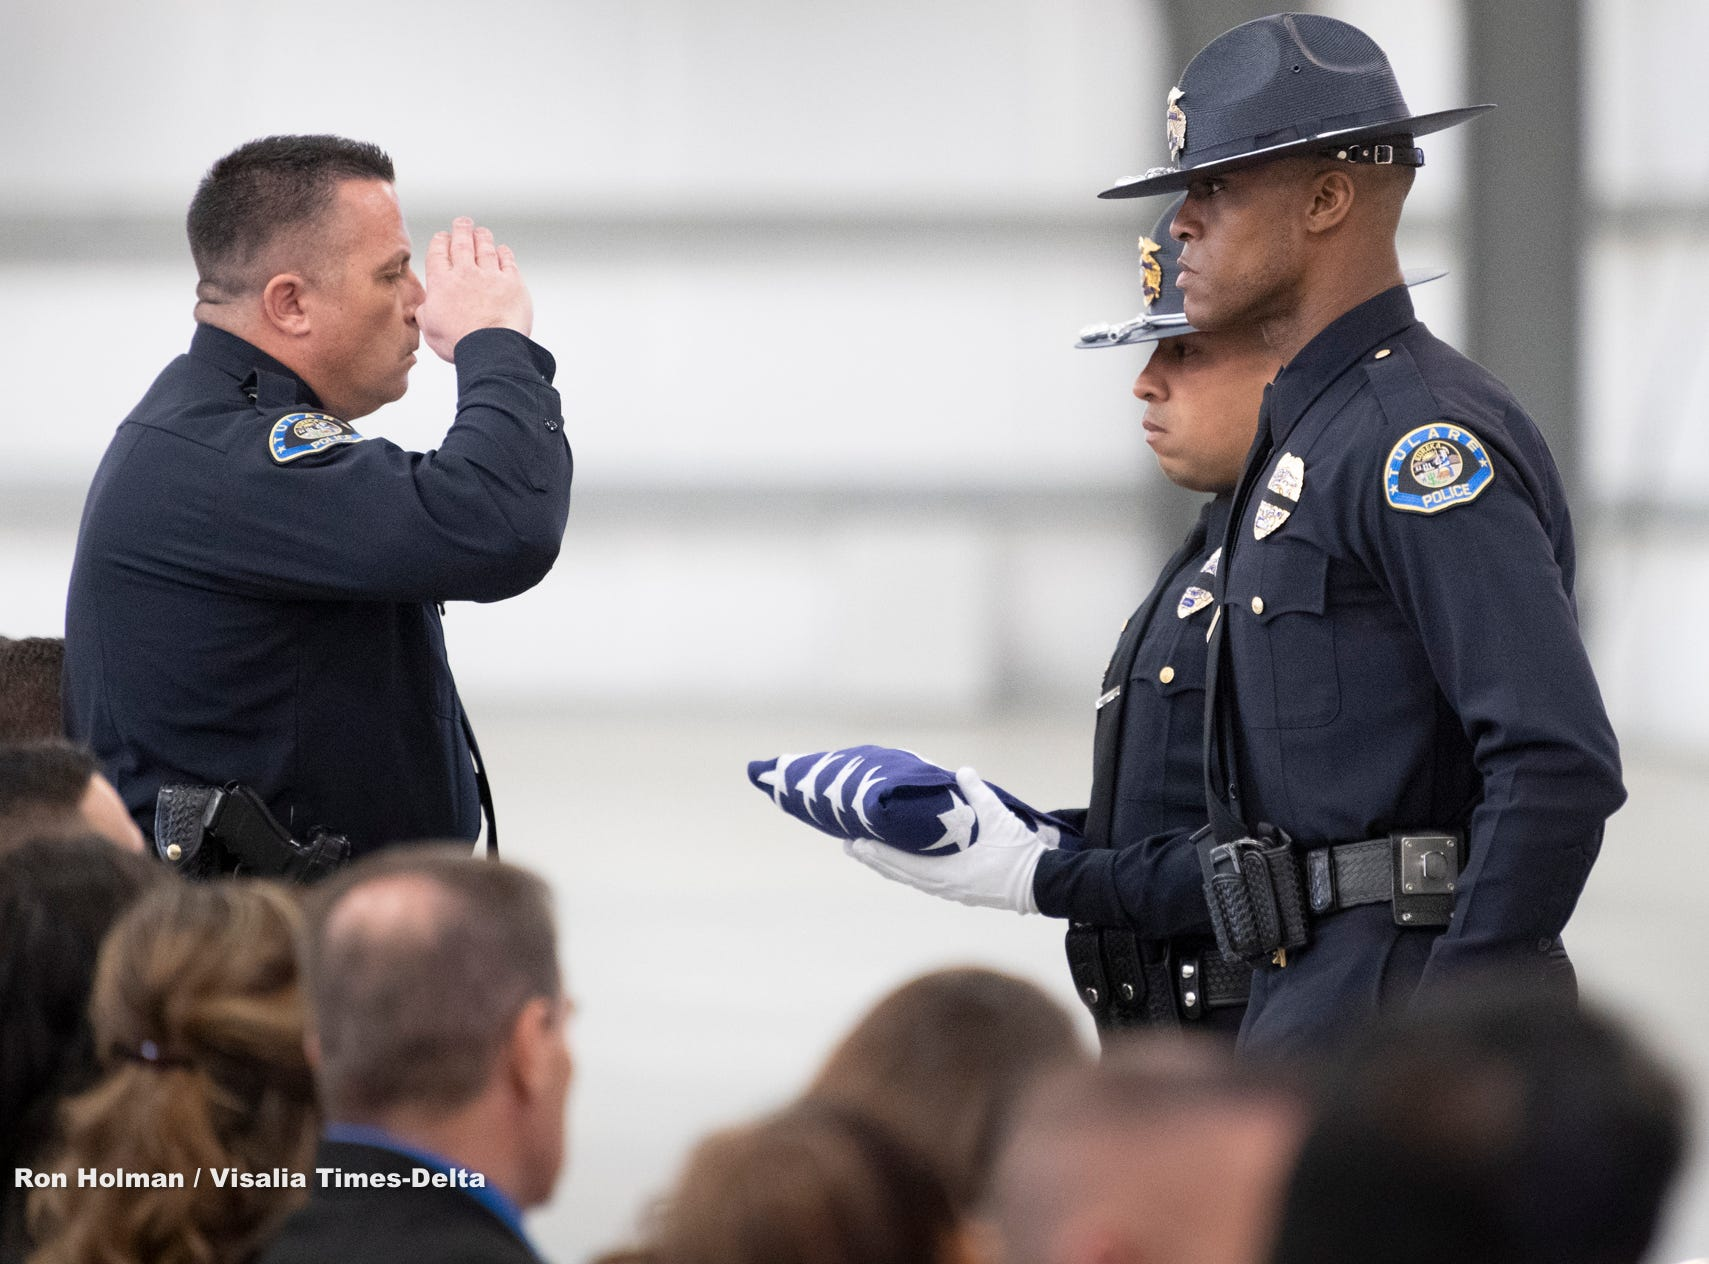 Tulare Interim Police Chief Matt Machado, left, salutes officers Jonathan Zequeida, left, and Eric Wilson after they folded a U.S. flag during a memorial for Tulare Police K-9 officer Bane on Wednesday, January 9, 2019. Bane was killed during an officer-involved shooting on December 9 of last year.